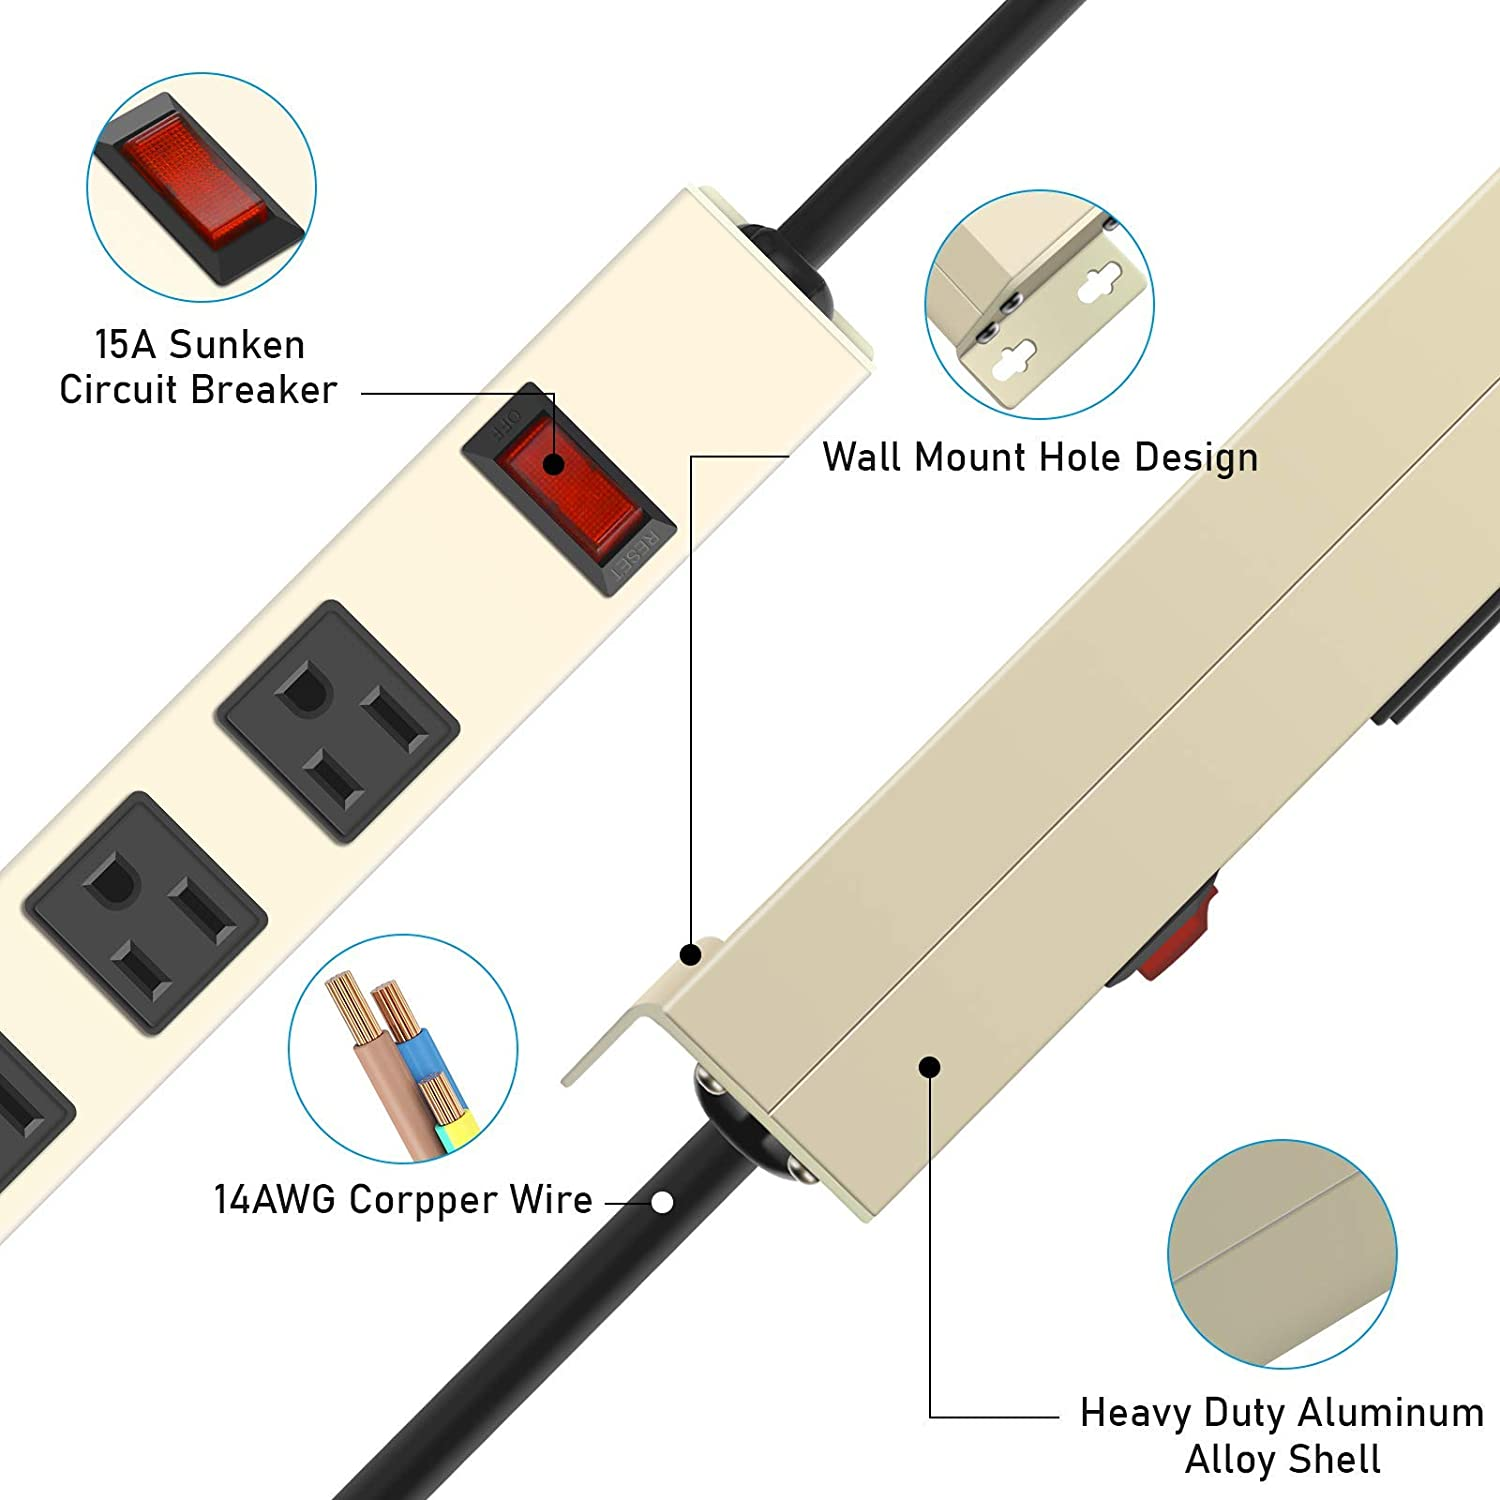 Metal 8 Outlet Power Strip, Mountable Heavy Duty Power Strip, 800J Surge Protector Wall Mount Power Outlet with Switch, 15A 125V 1875W, 6 FT 14AWG Power Cord